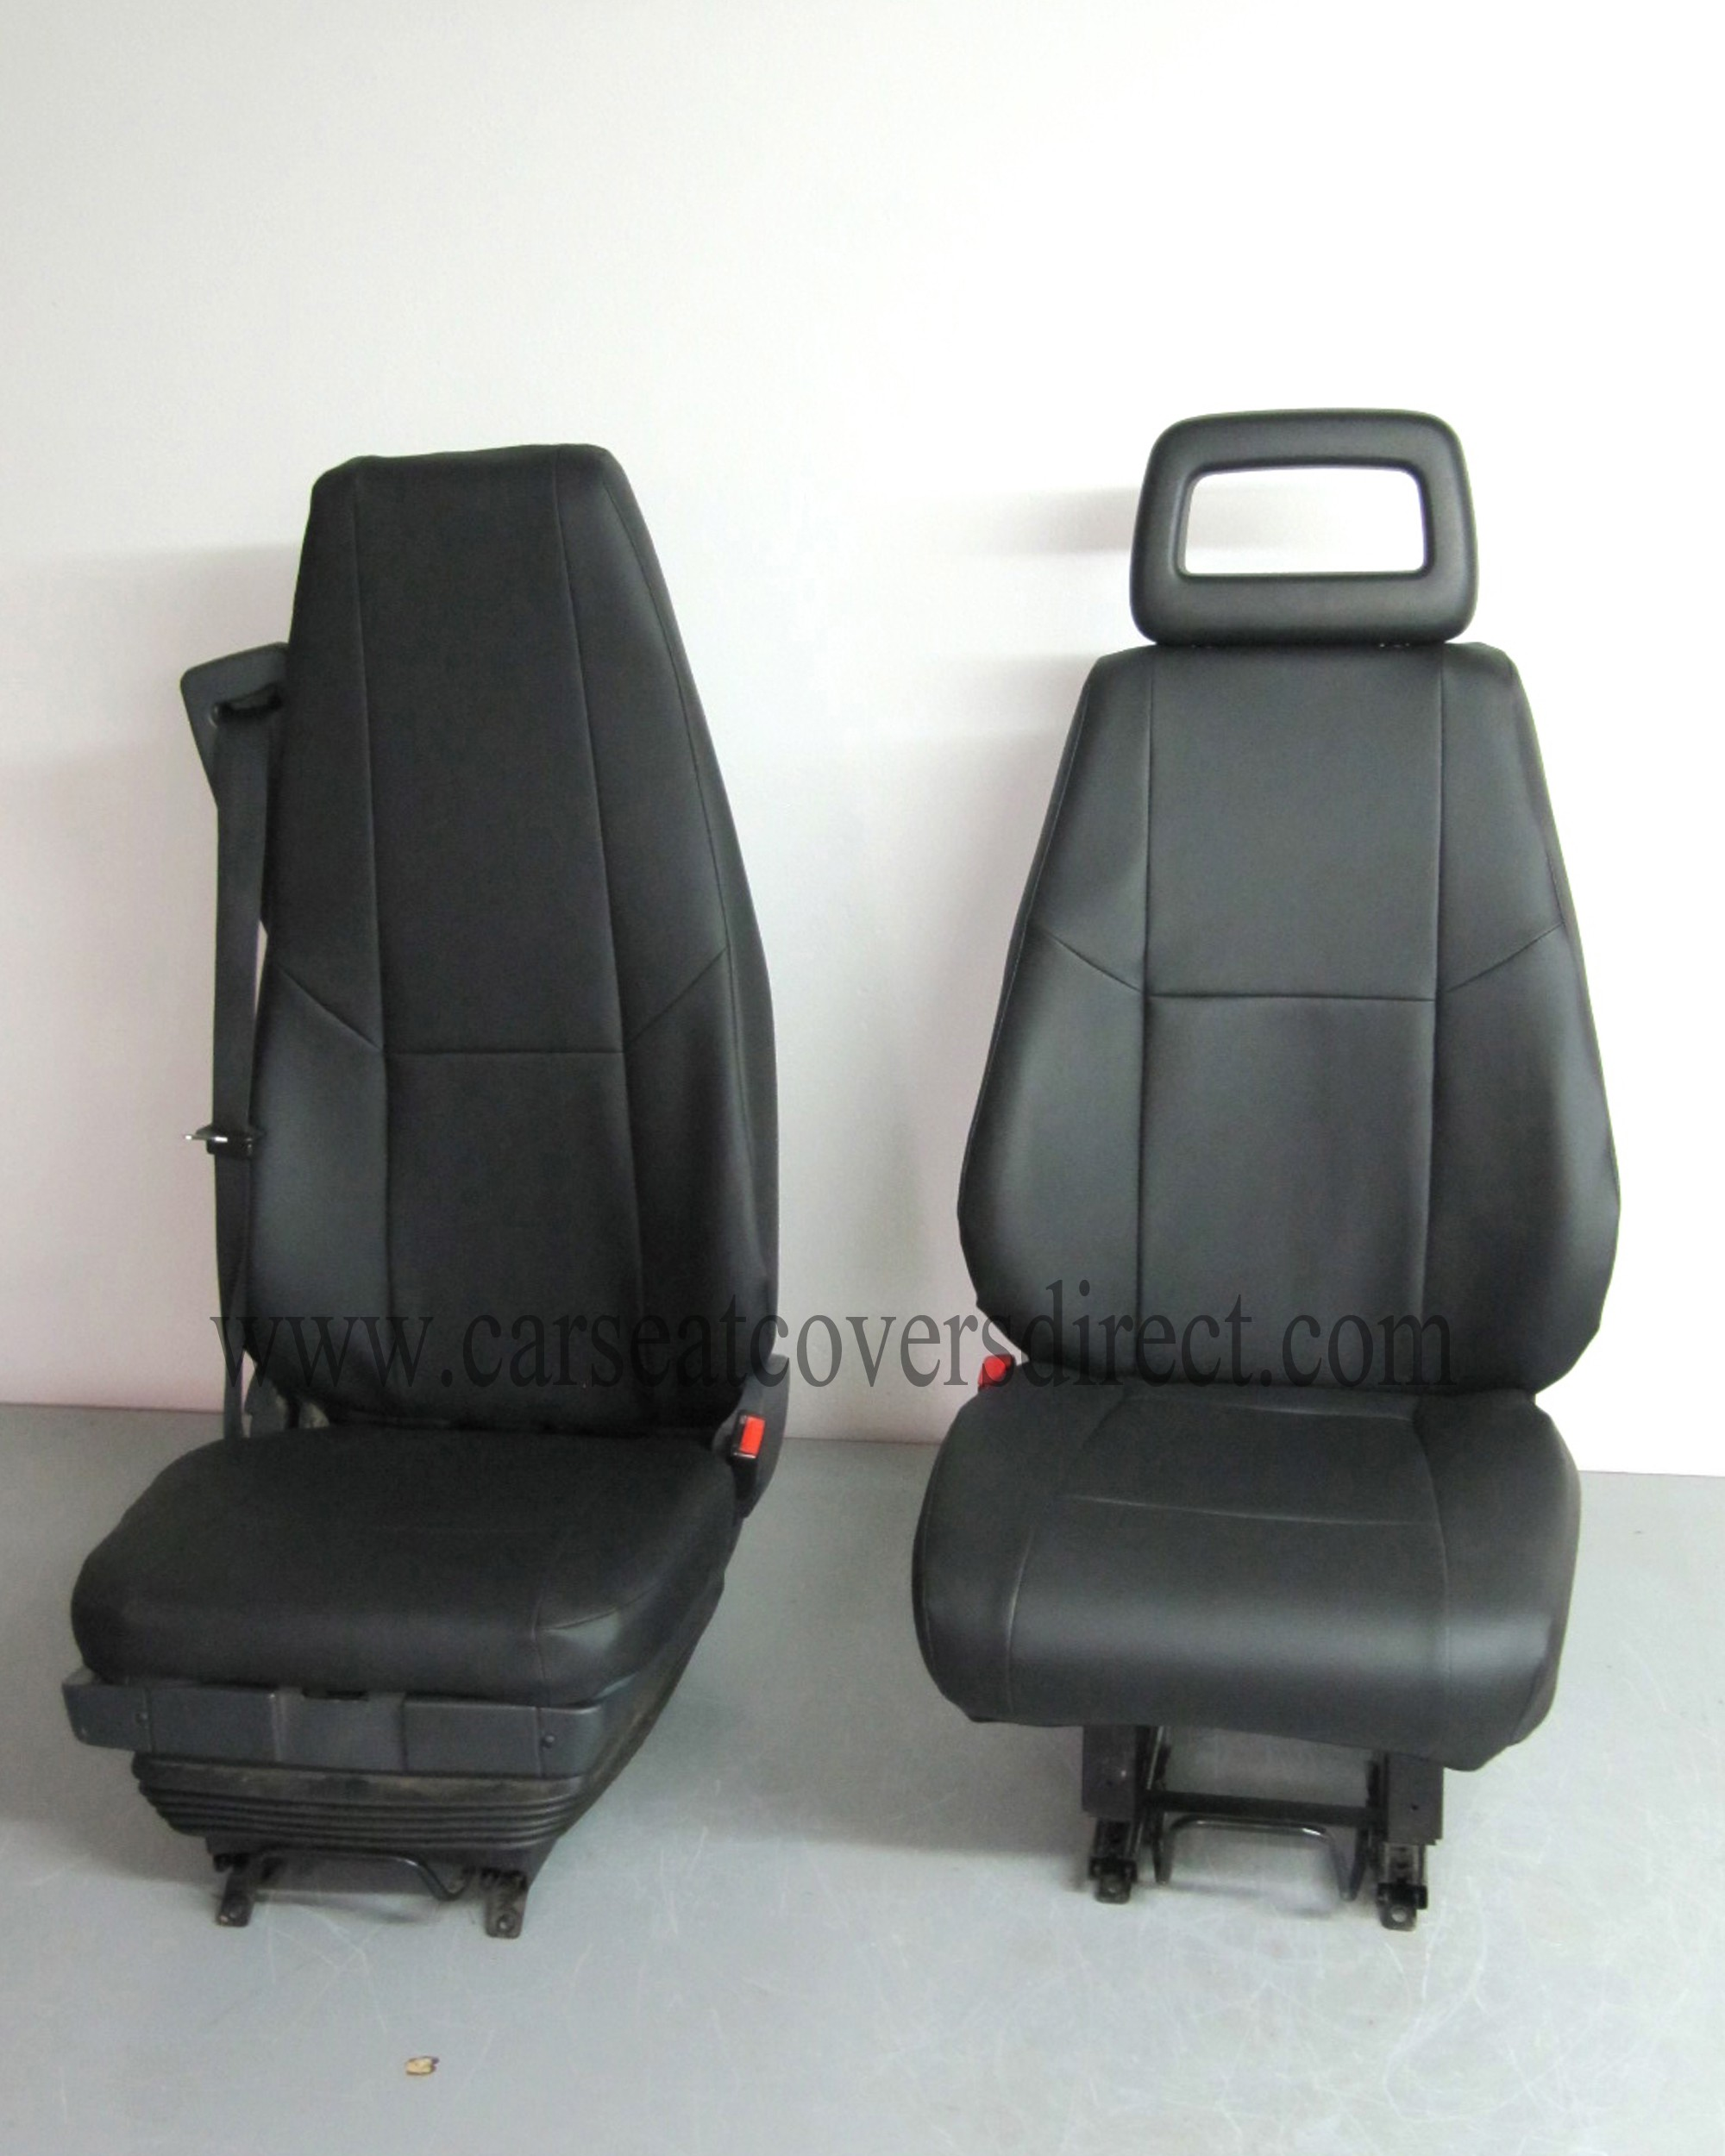 volvo fl220 custom tailored seat covers car seat covers direct tailored to your choice. Black Bedroom Furniture Sets. Home Design Ideas